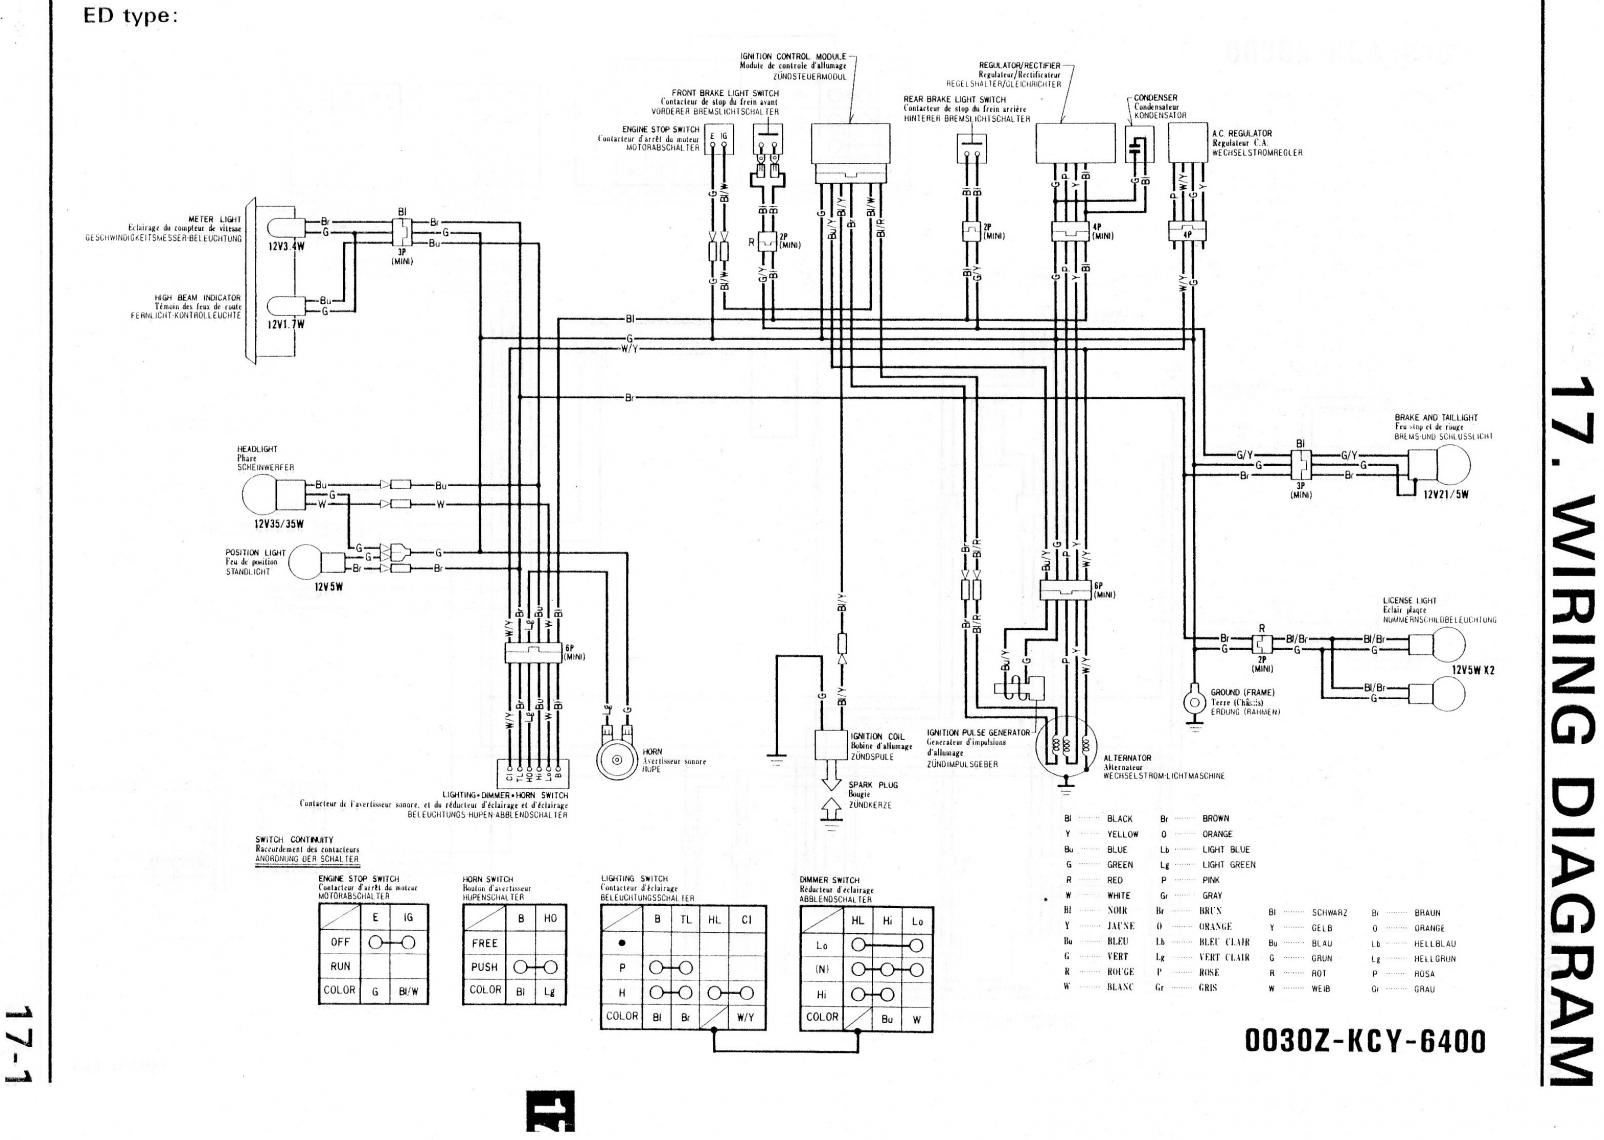 Mitsubishi L200 Ignition Wiring Diagram Guide And Troubleshooting Suzuki Xl7 Todays Rh 2 8 9 1813weddingbarn Com Electrical Diagrams